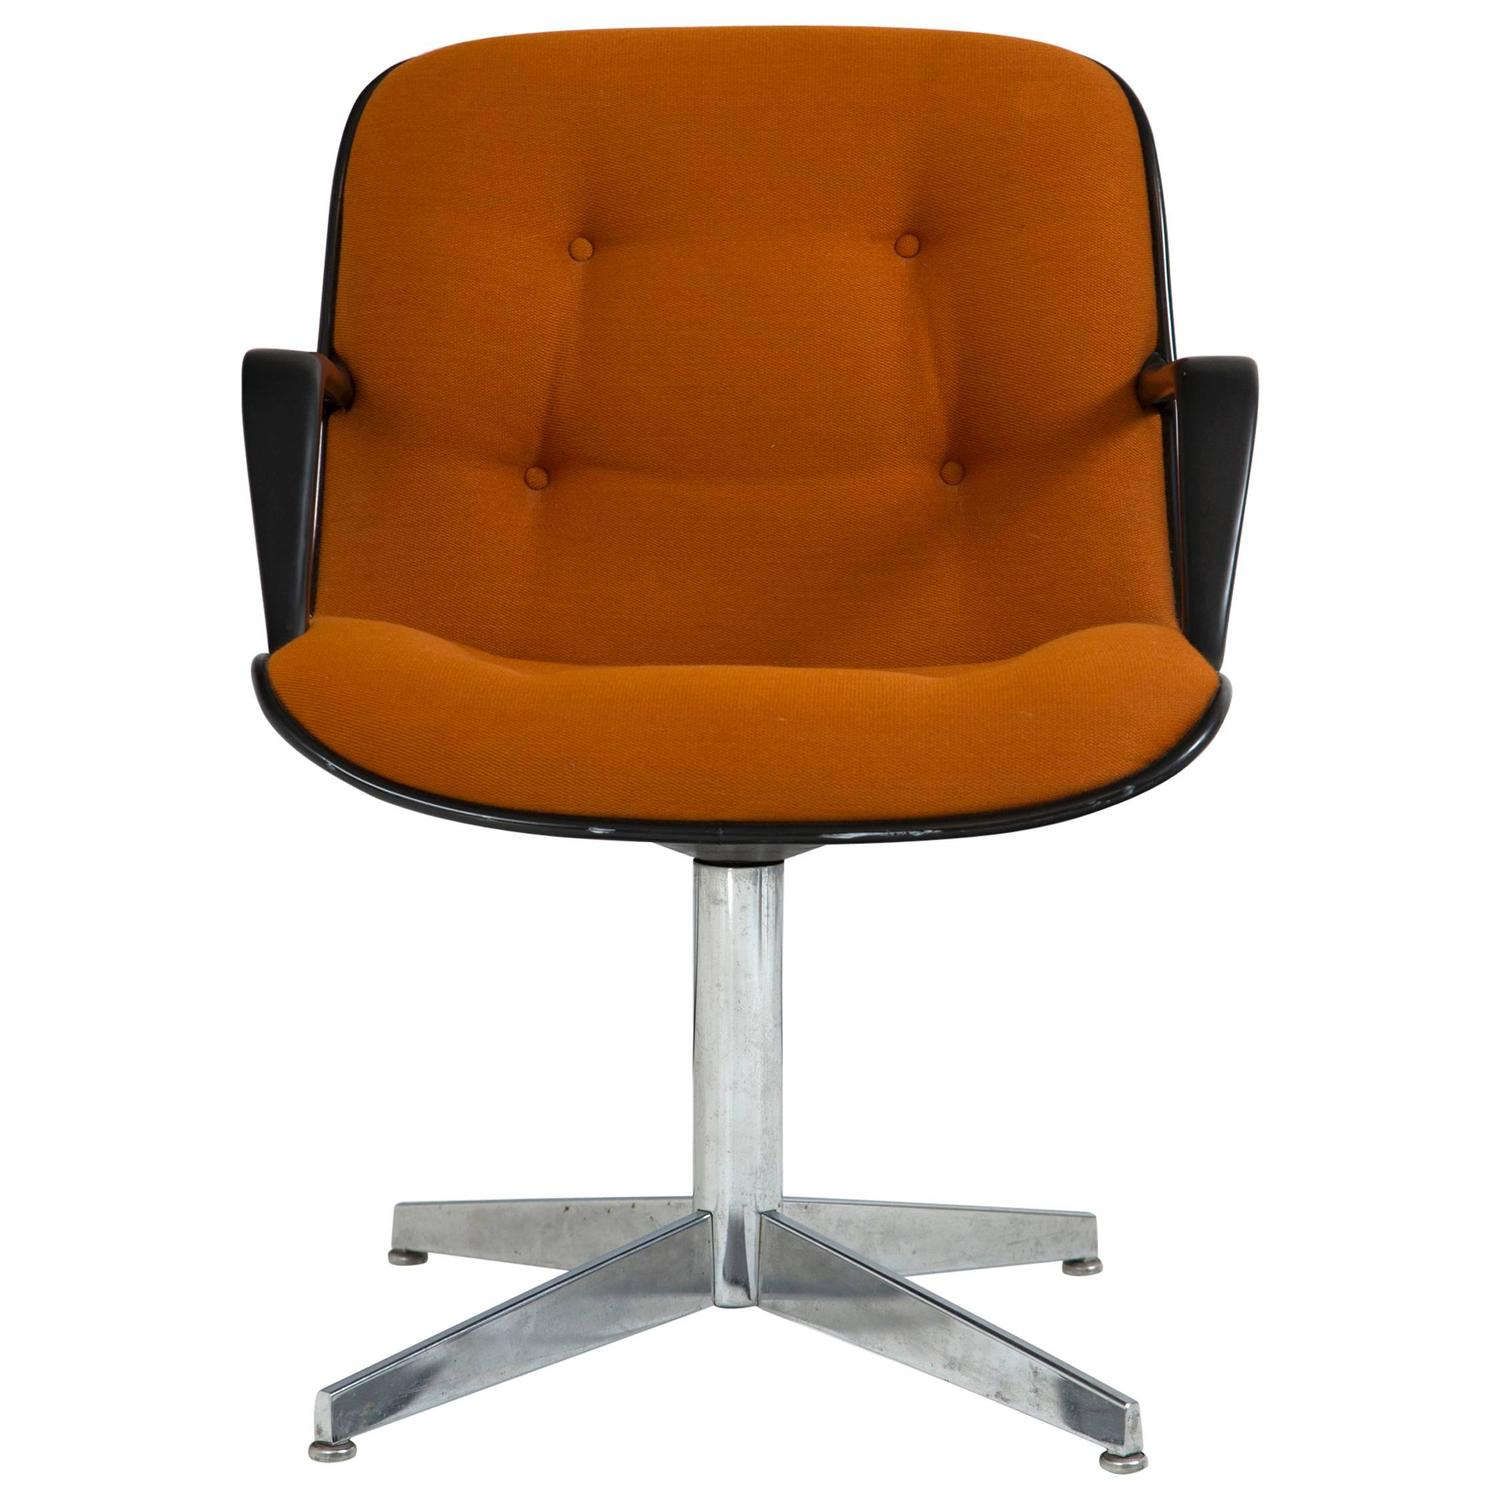 Vintage Steelcase Side Chair at 1stdibs